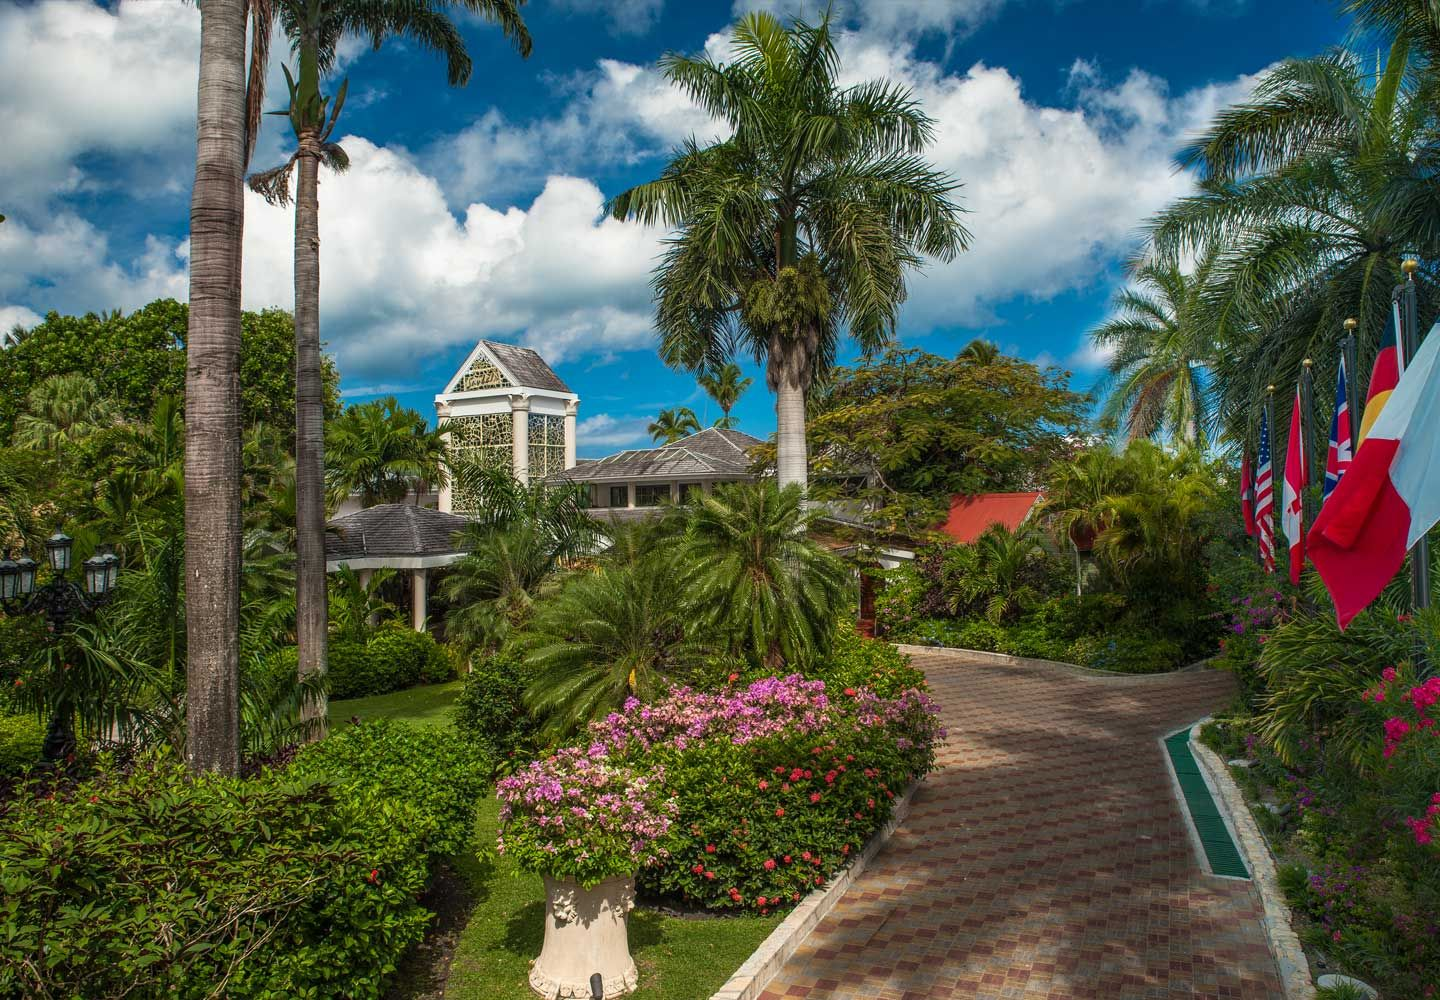 c1580c1422599 Enter authentic tranquility of the tropical Caribbean Village main entrance.